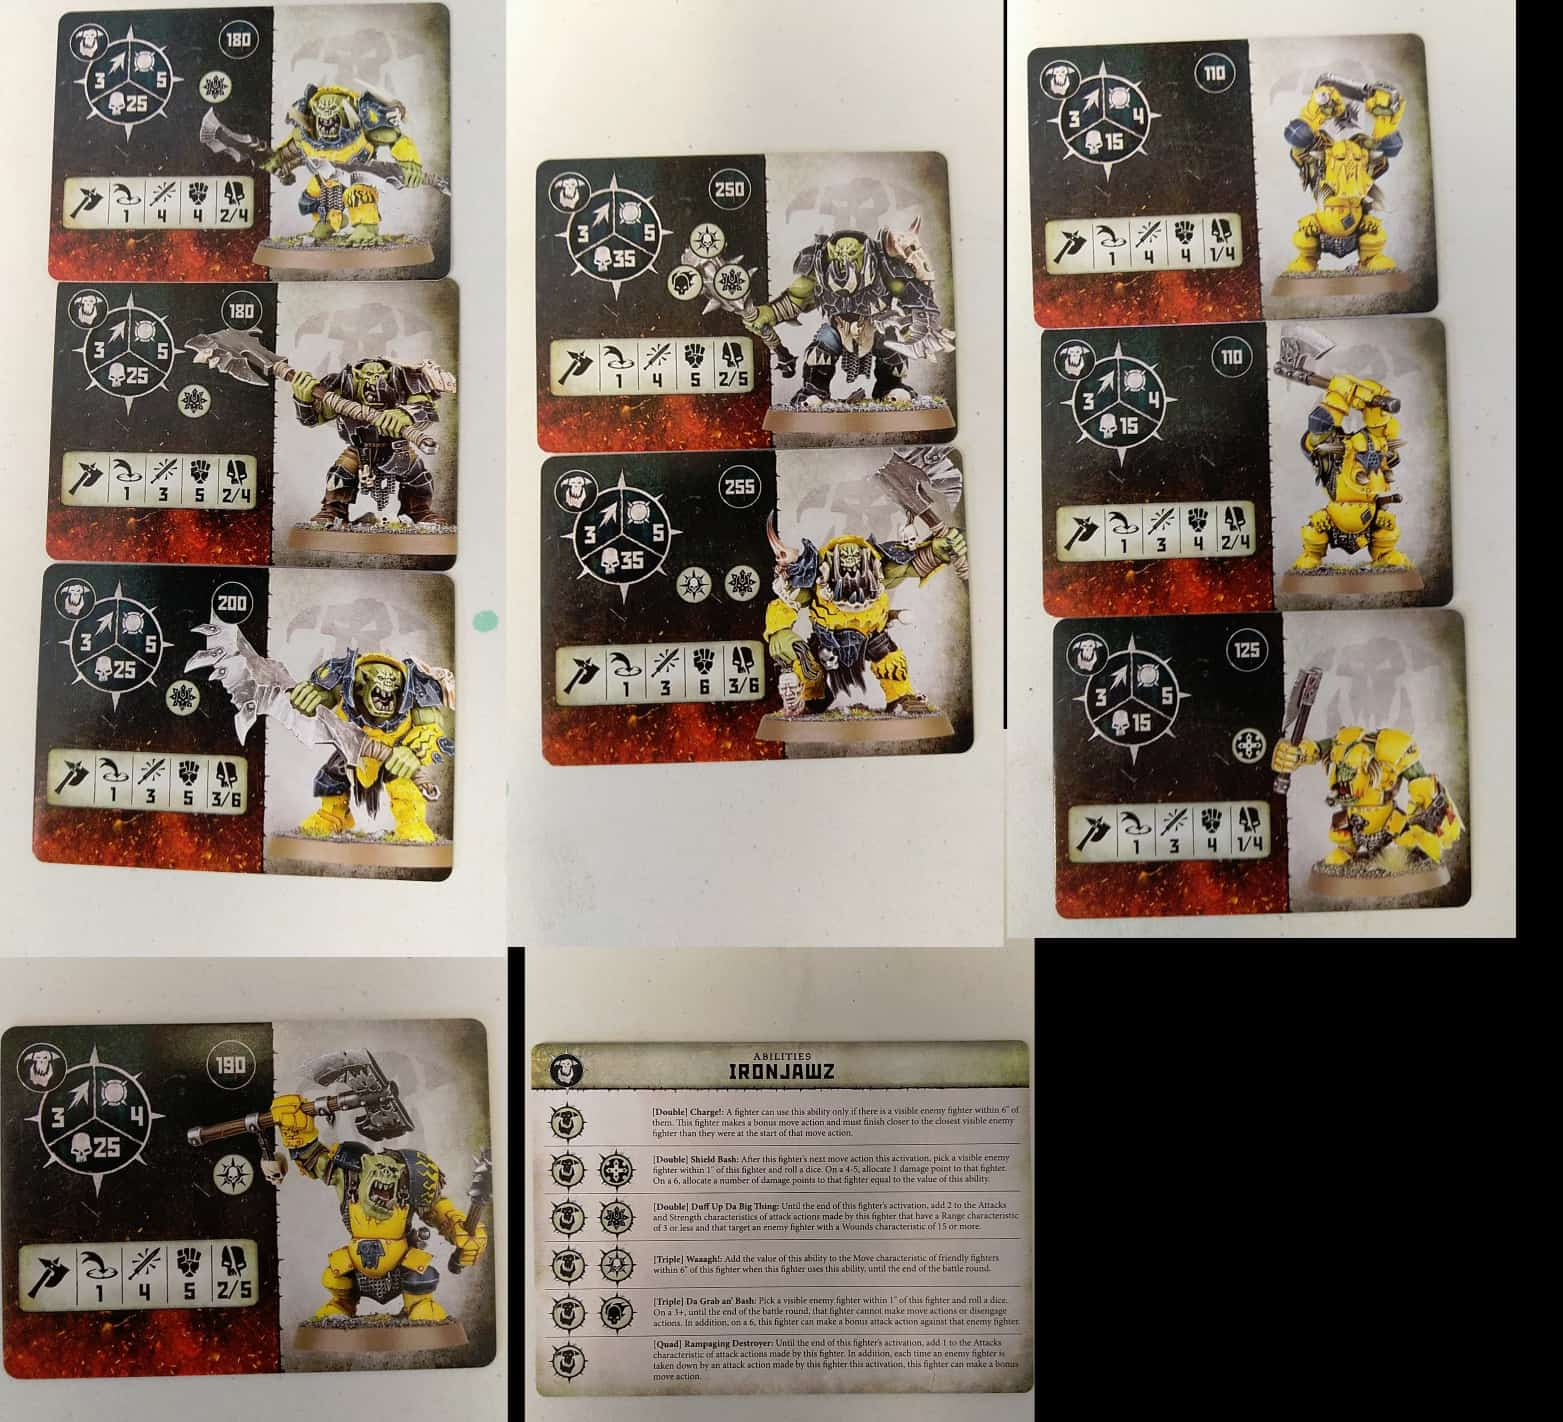 Fighter Card for the Ironjawz Warband in Warcry